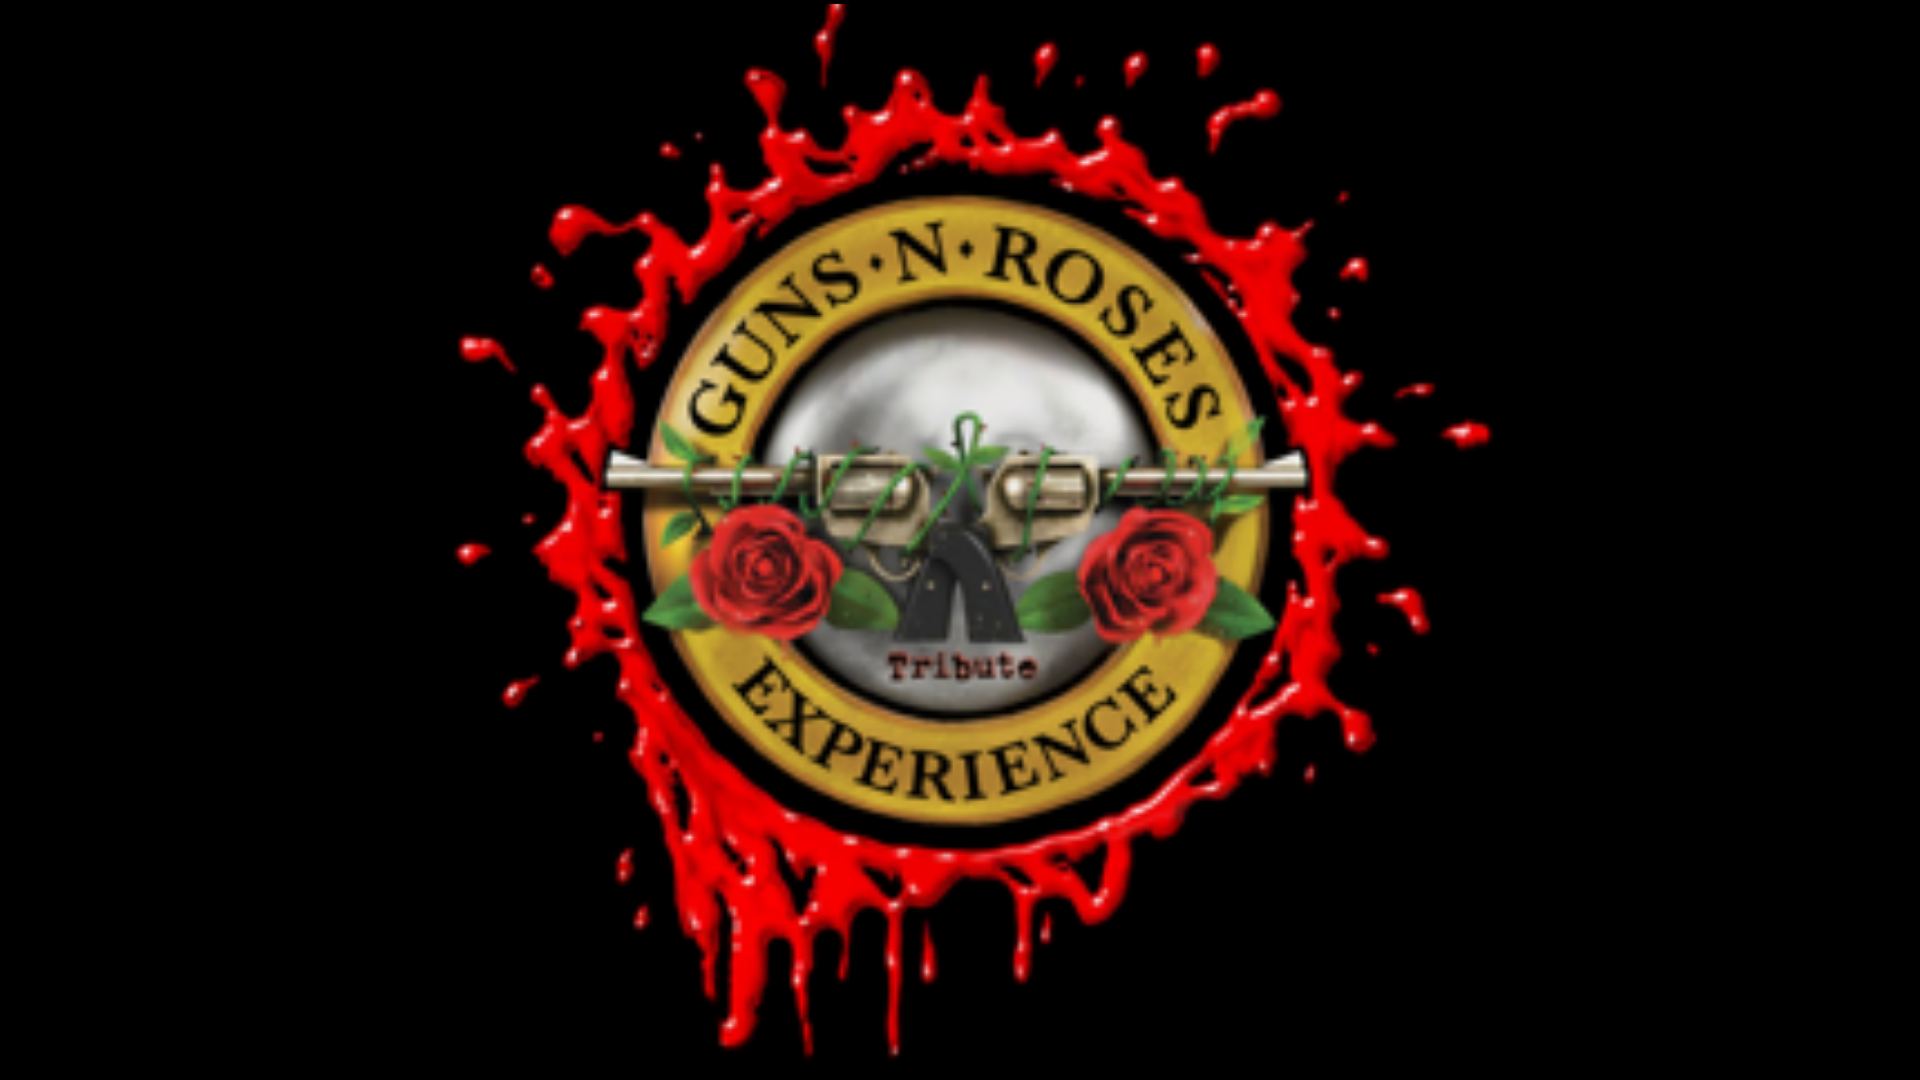 Promo image of Guns n Roses Experience (Tribute to Guns n Roses)